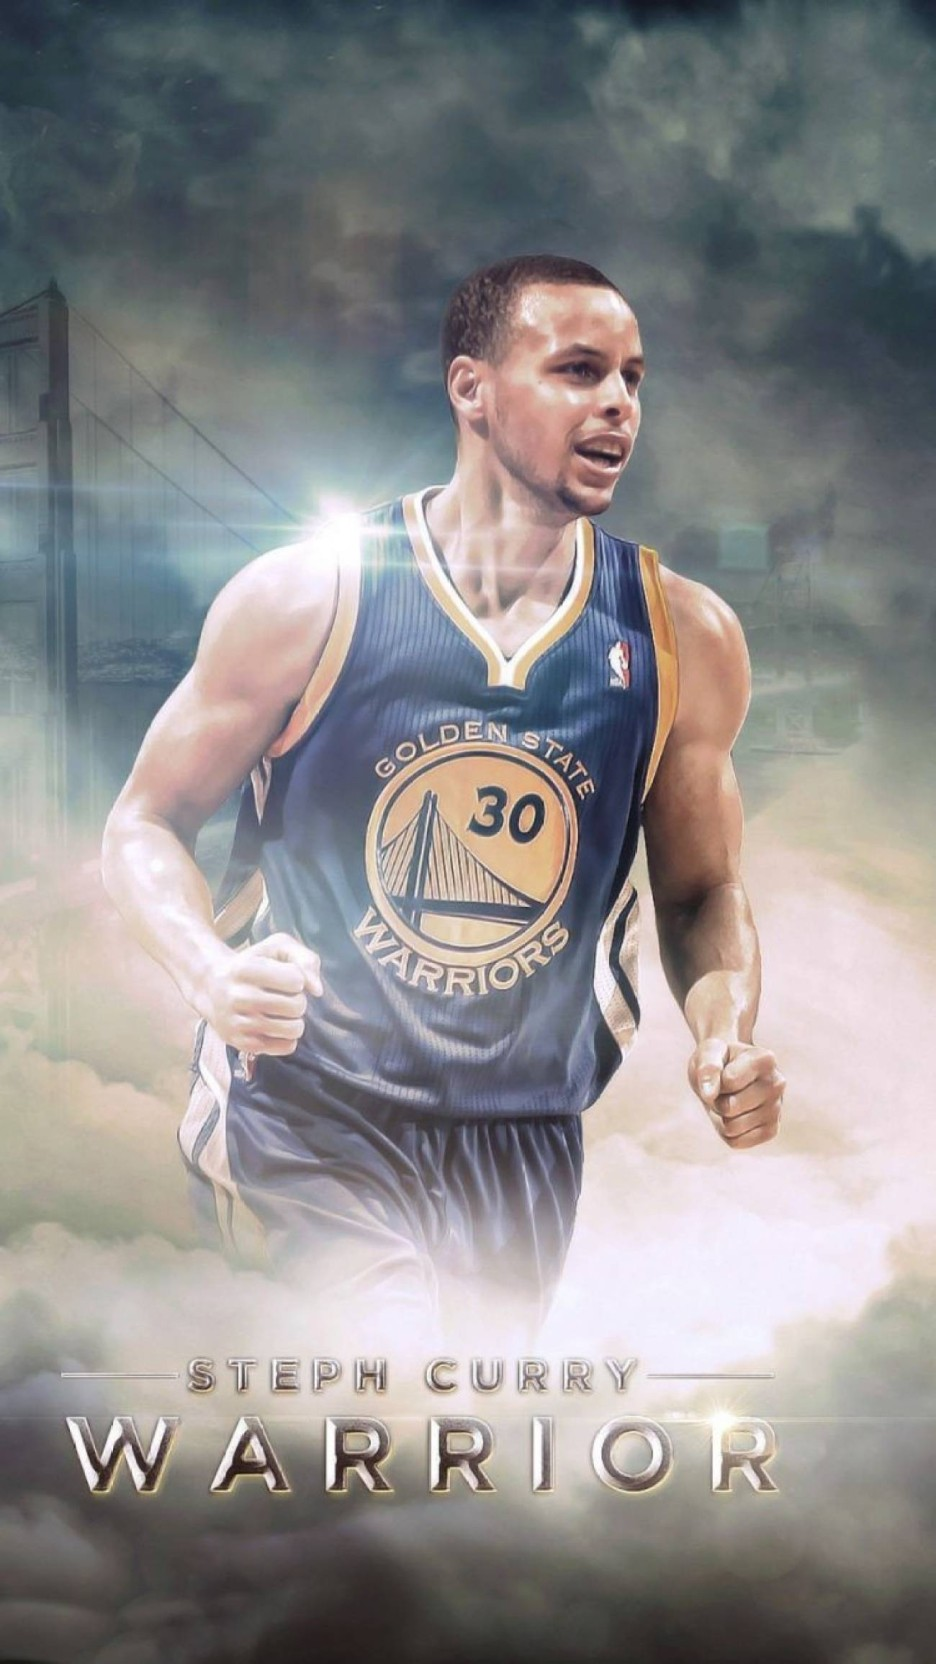 STEPH CURRY WARRIORS Photo Quality Poster Choose a Size B